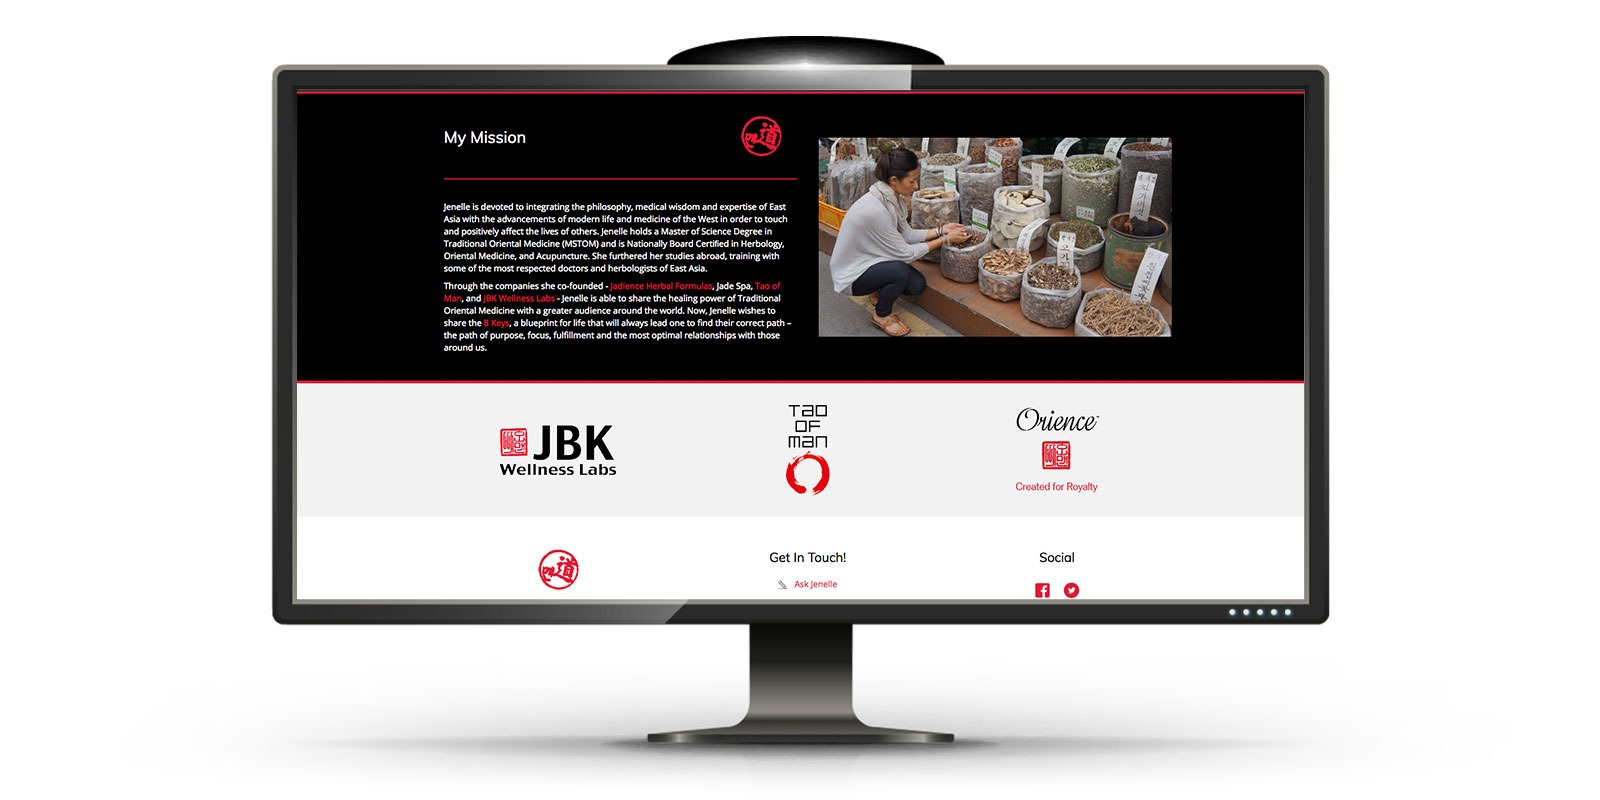 website design for business JBK wellness Kim on desktop